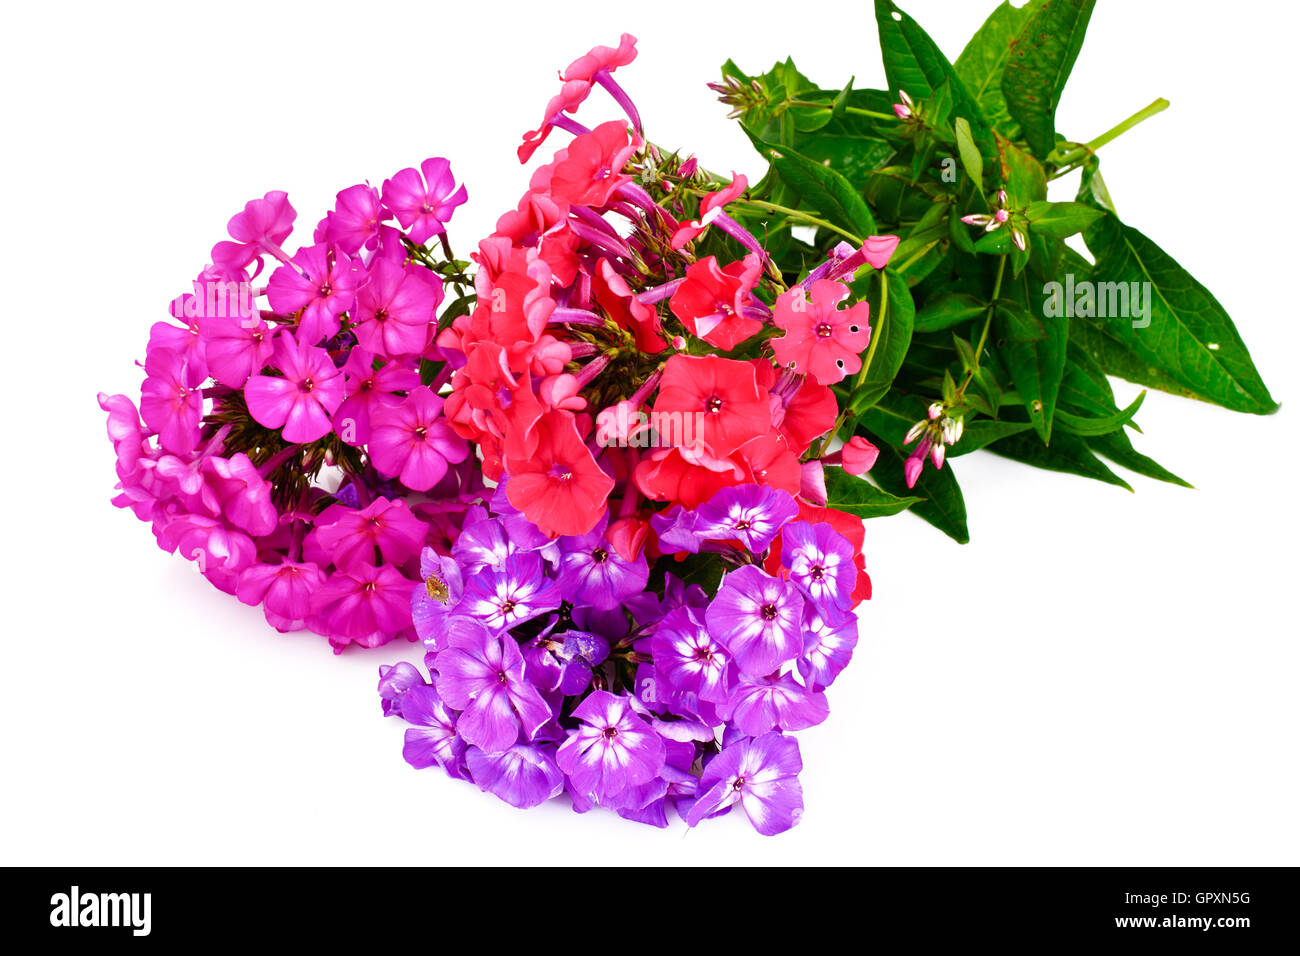 Bright Beautiful Flowers Phlox On White Stock Photo 117372012 Alamy